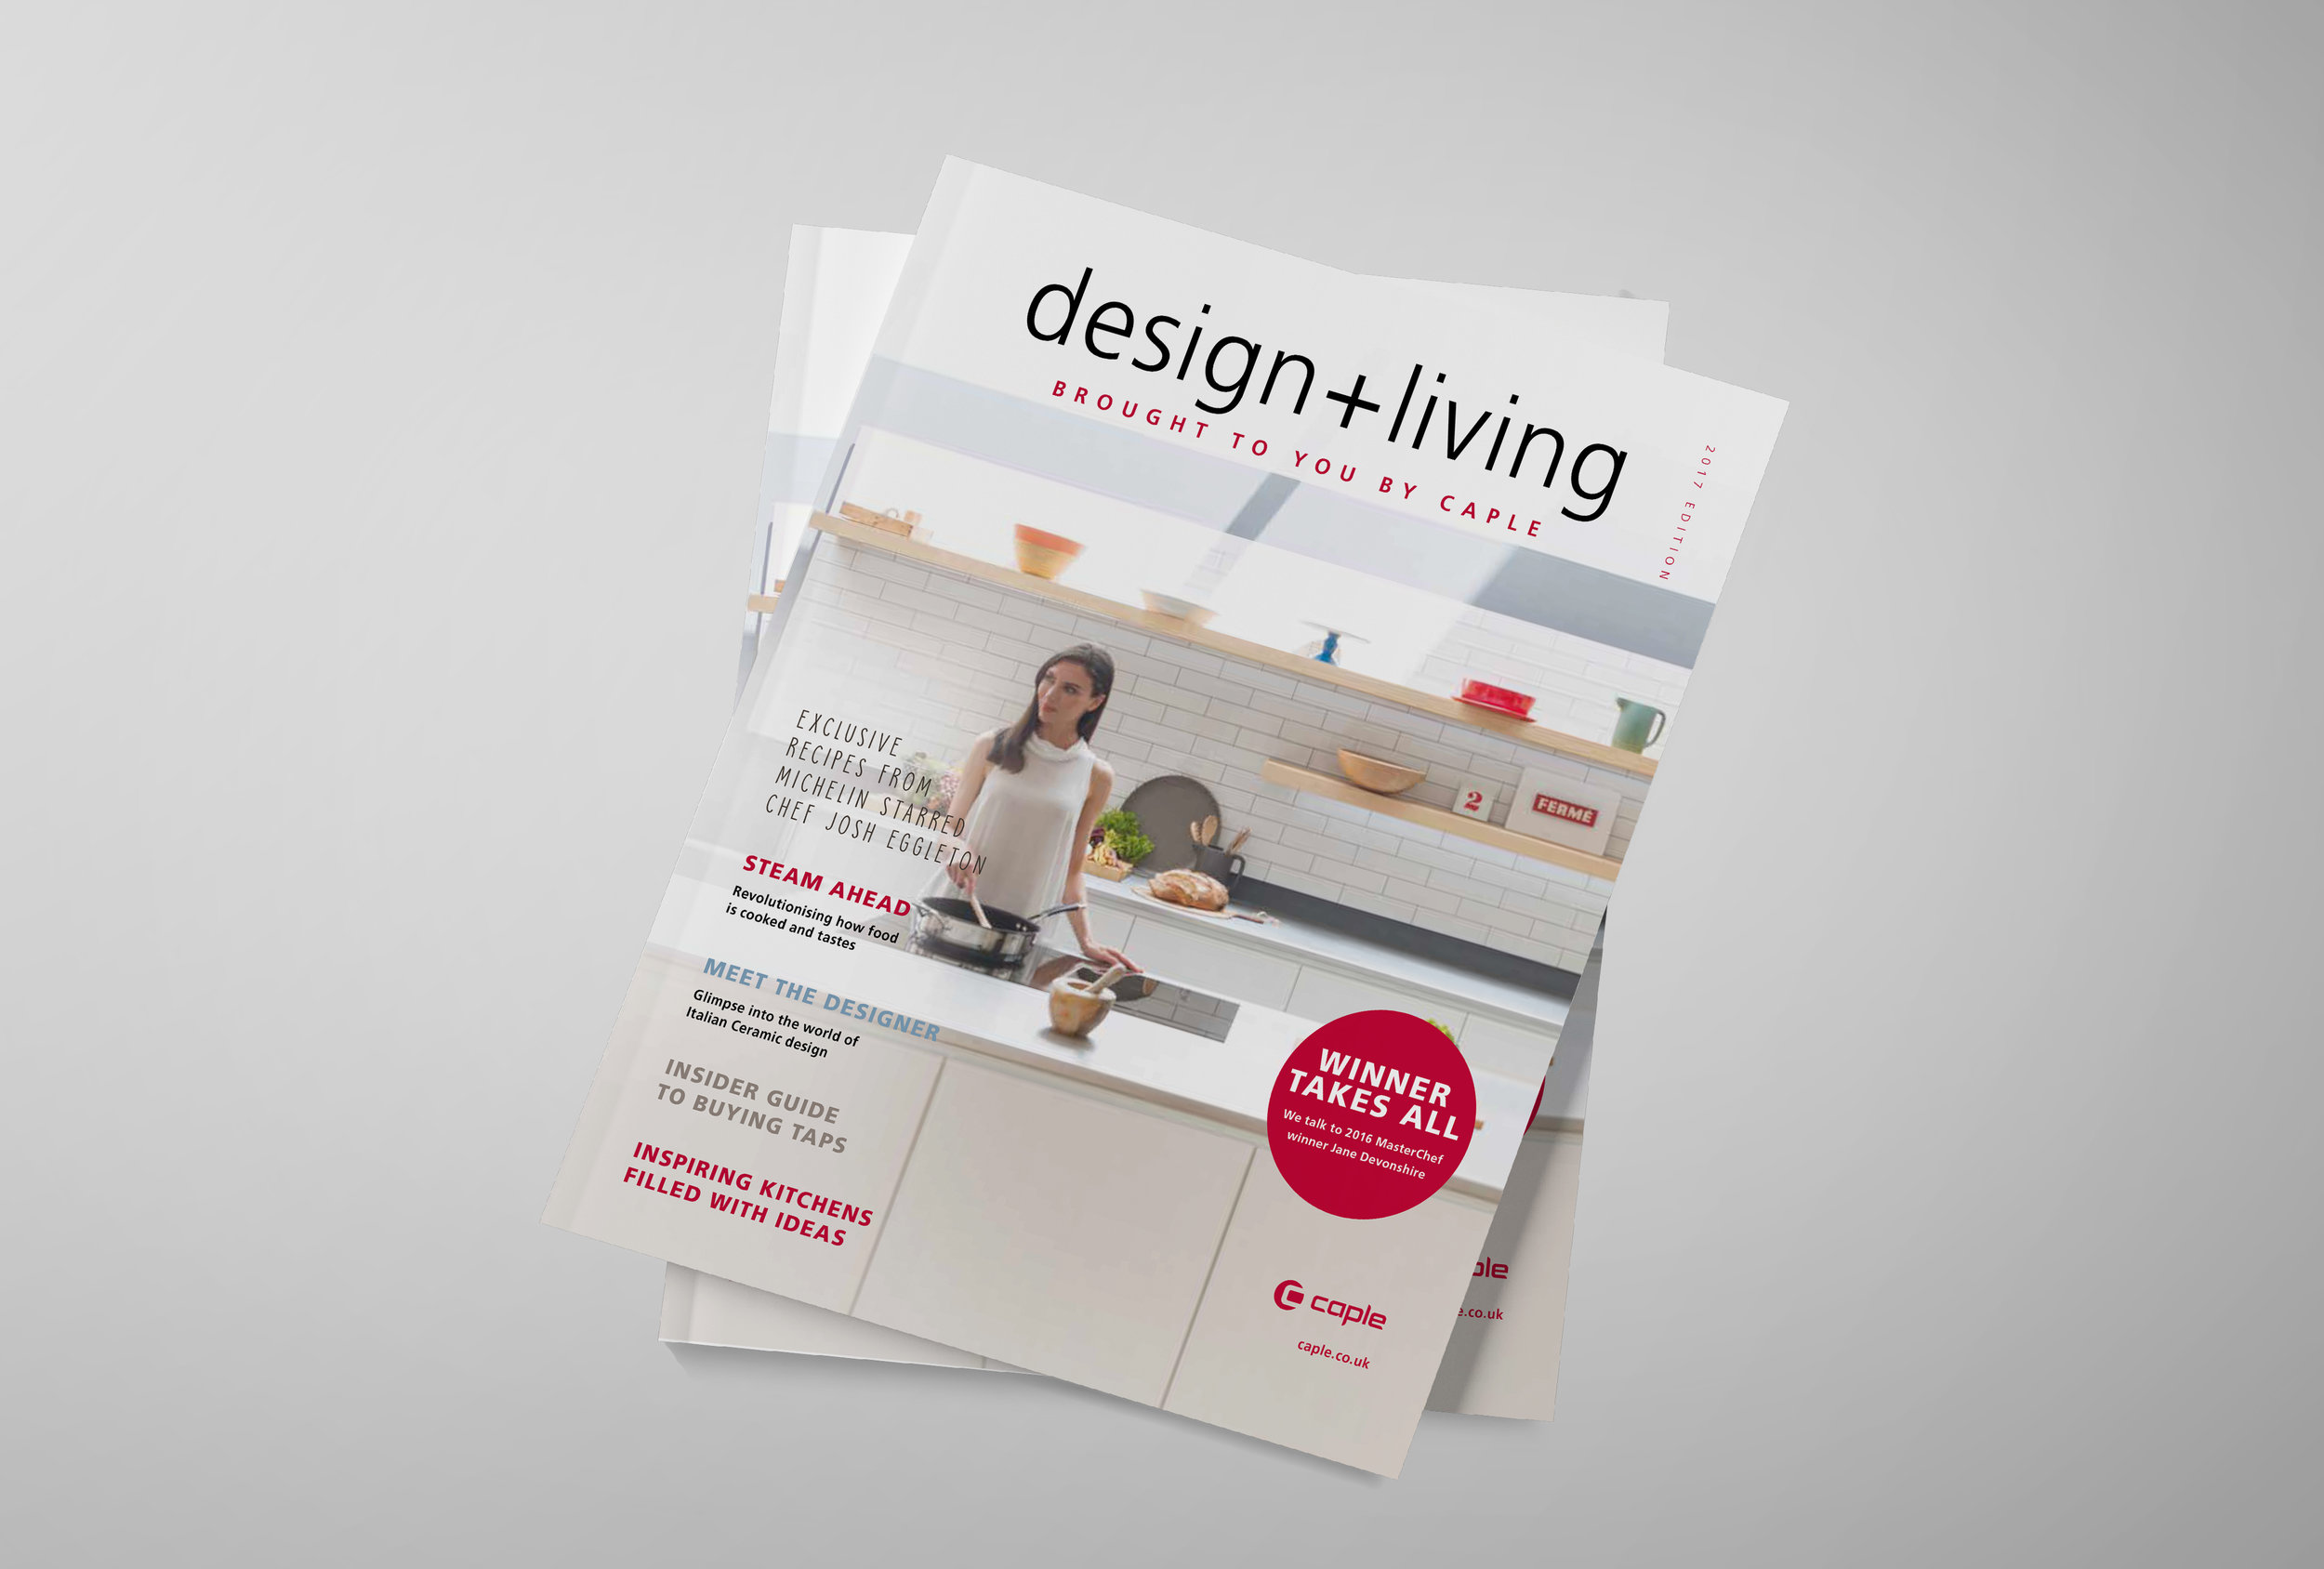 <strong>CAPLE</strong><p>Design + Living Magazine</p>